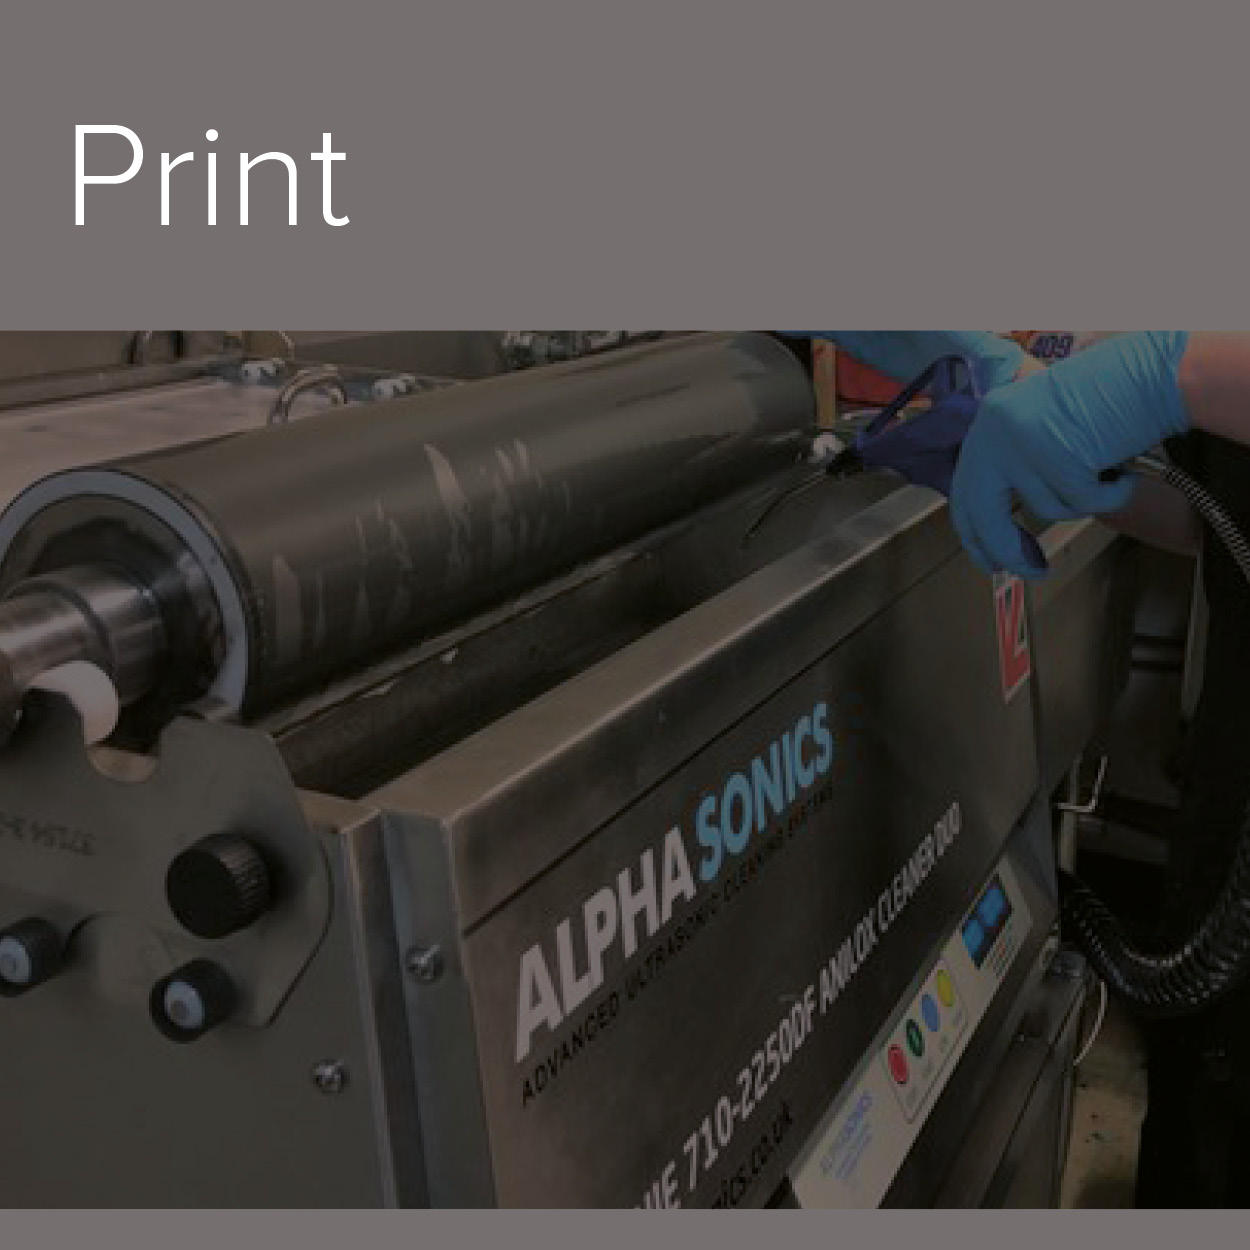 A decorative image of the Print industry in which Alphasonics cater to.